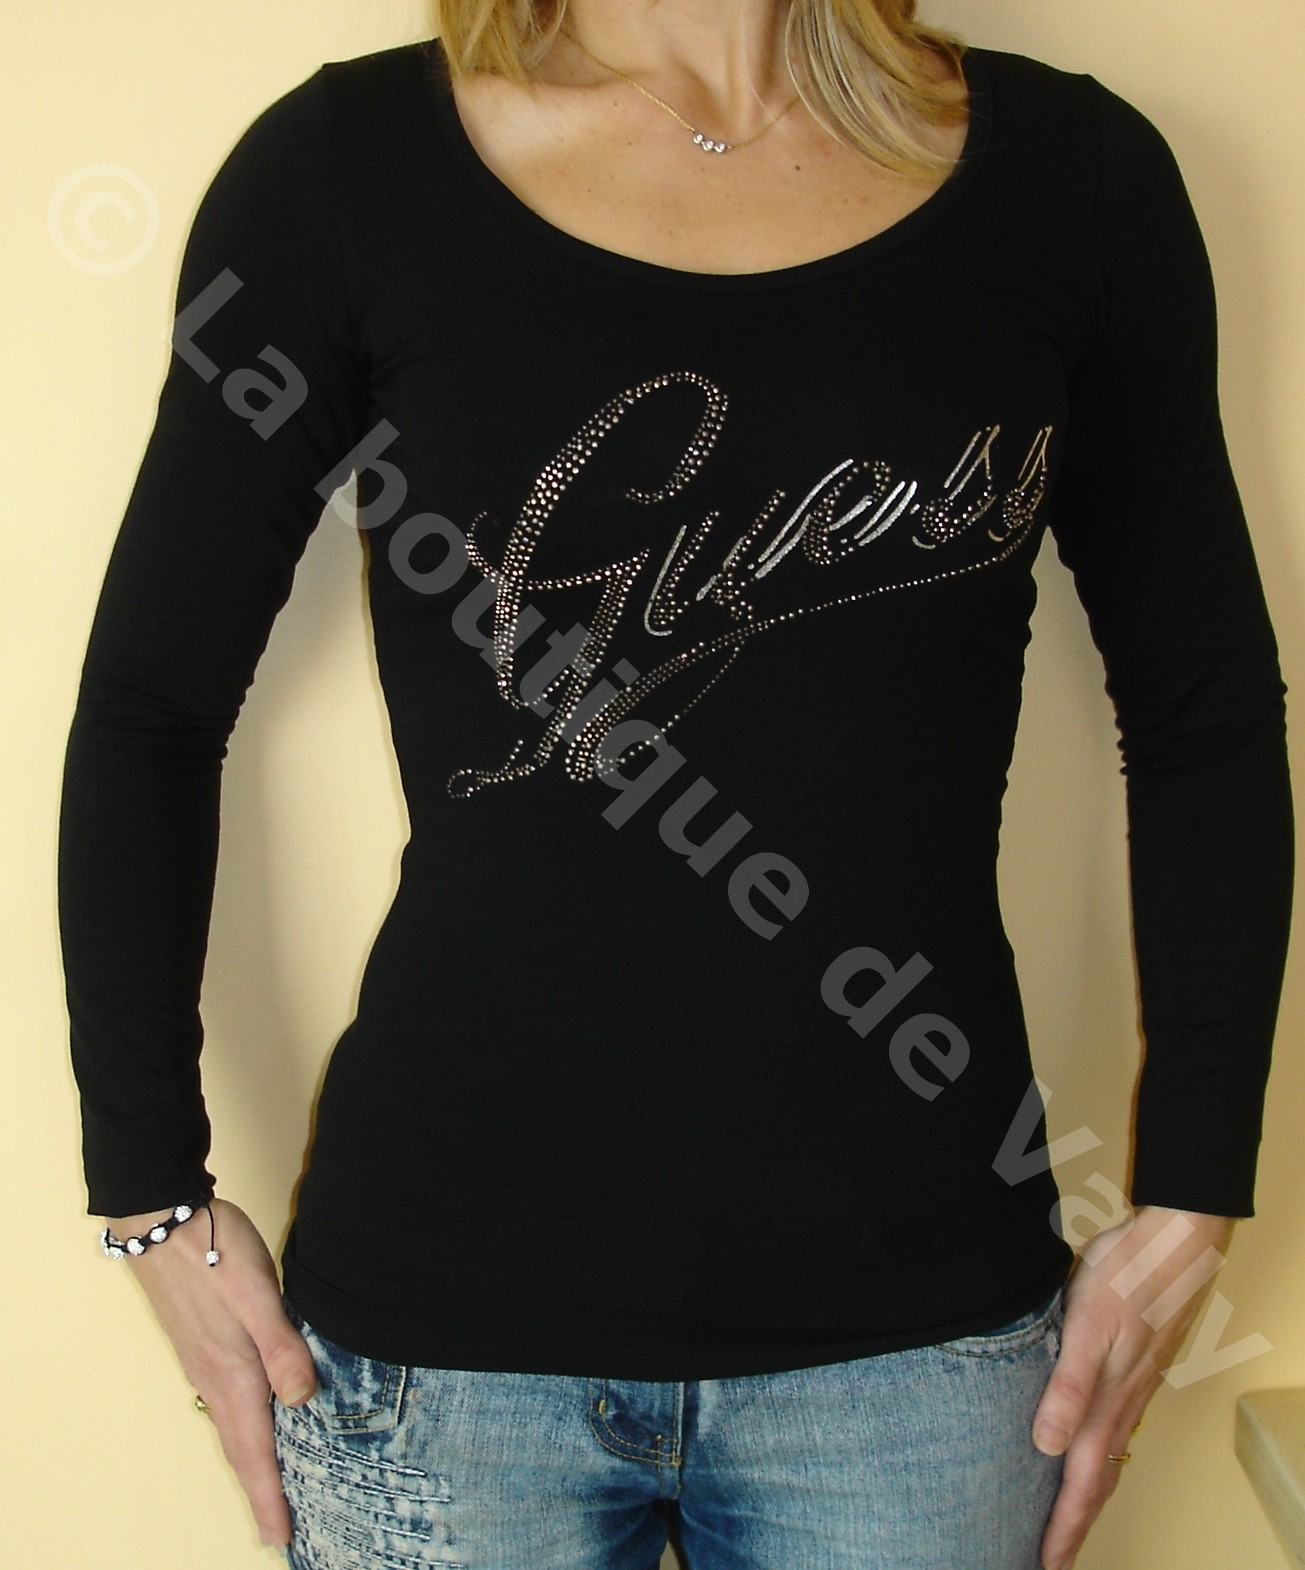 T-shirt Guess manches longues noir - Boutique fringuesdiscount.wifeo.com 182c469ee79